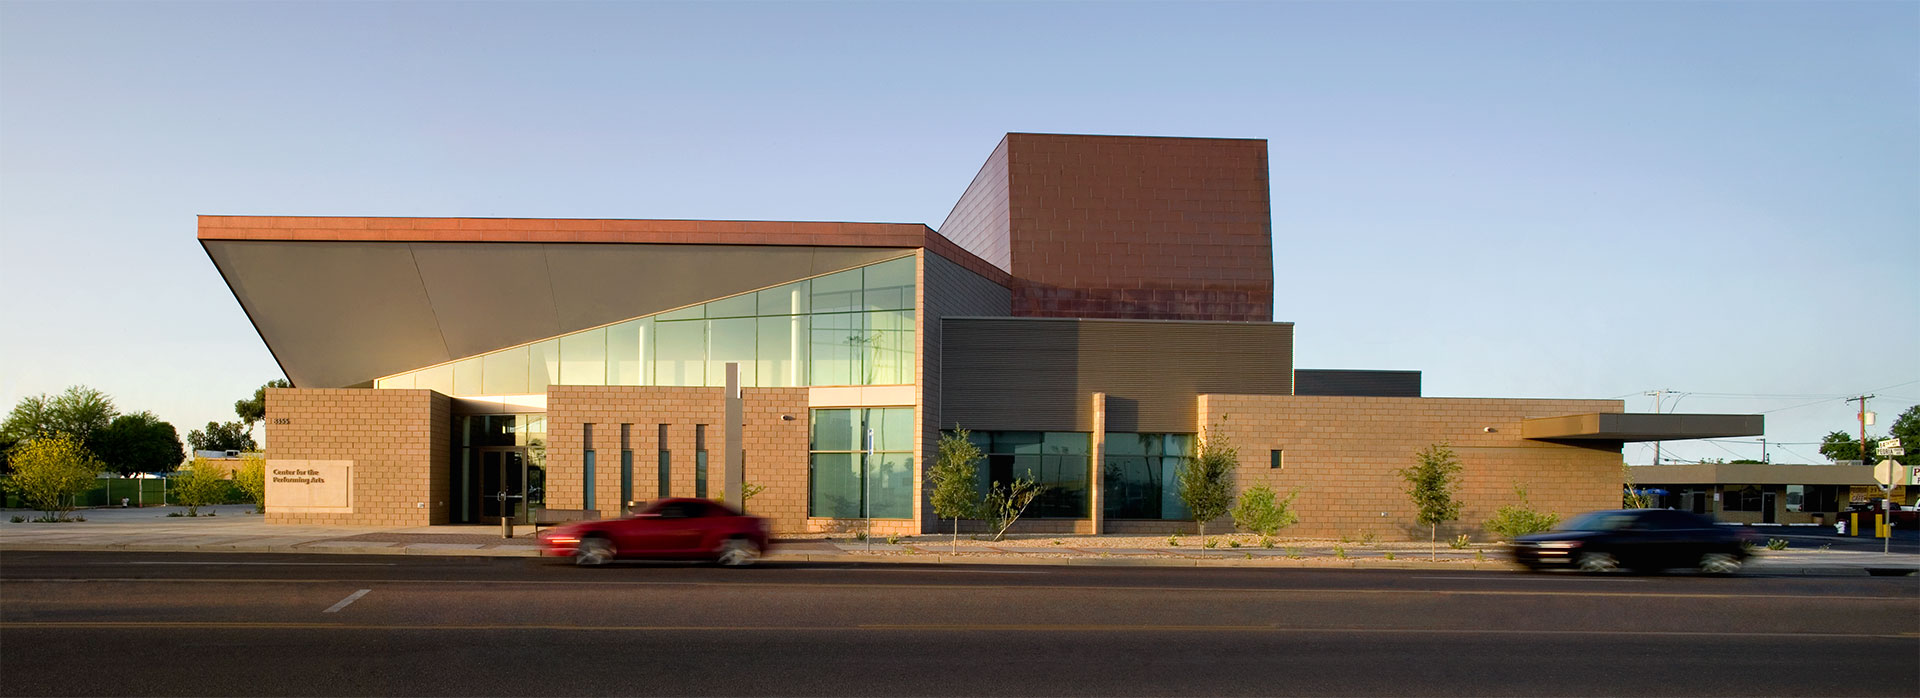 Peoria Center for the Performing Arts